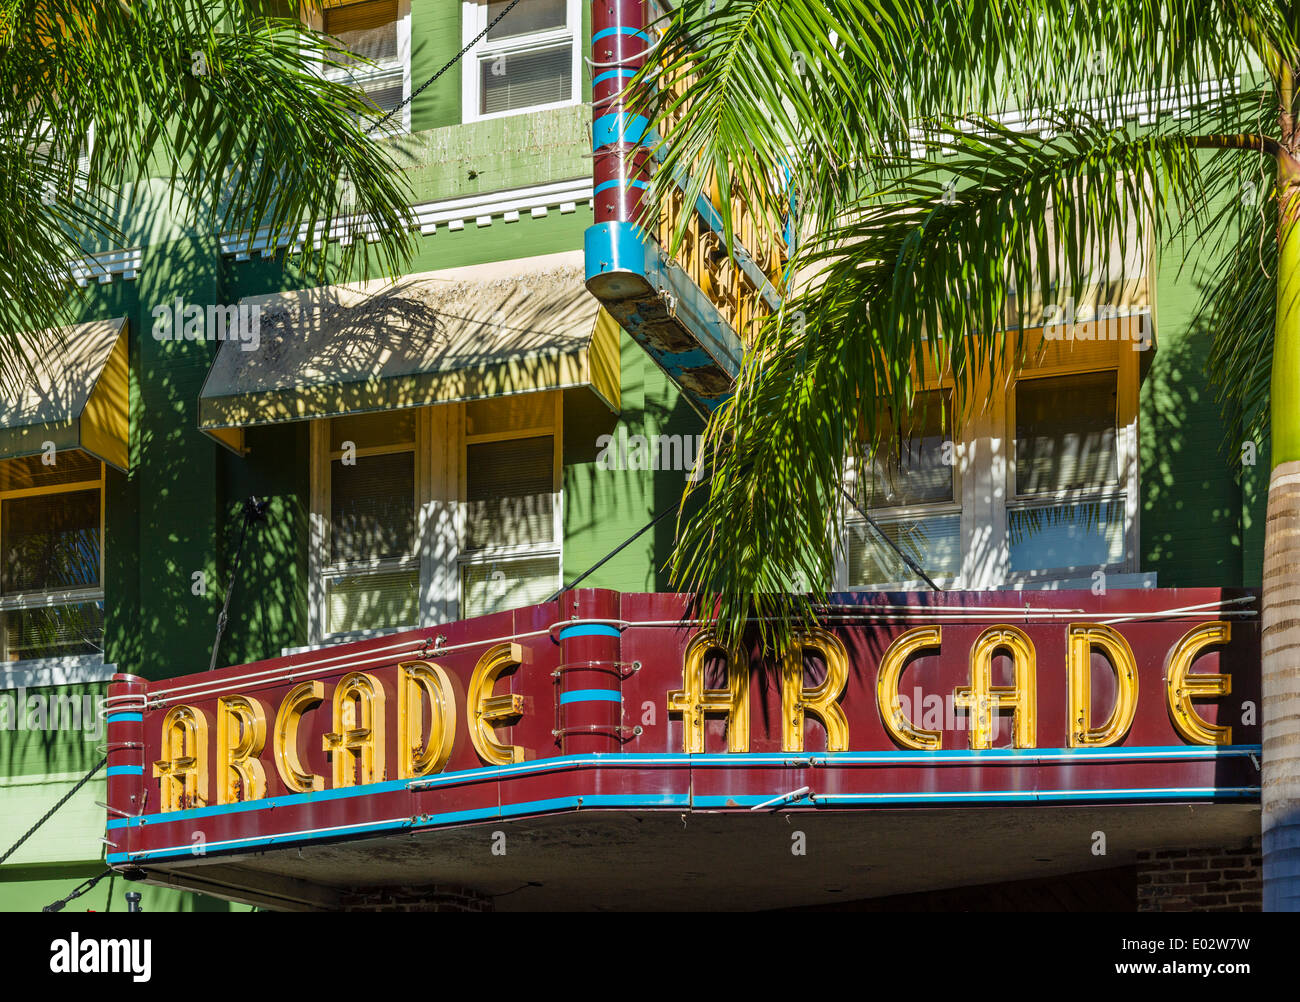 Historic Arcade Theater on First Street in the River District in downtown Fort Myers, Florida, USA - Stock Image